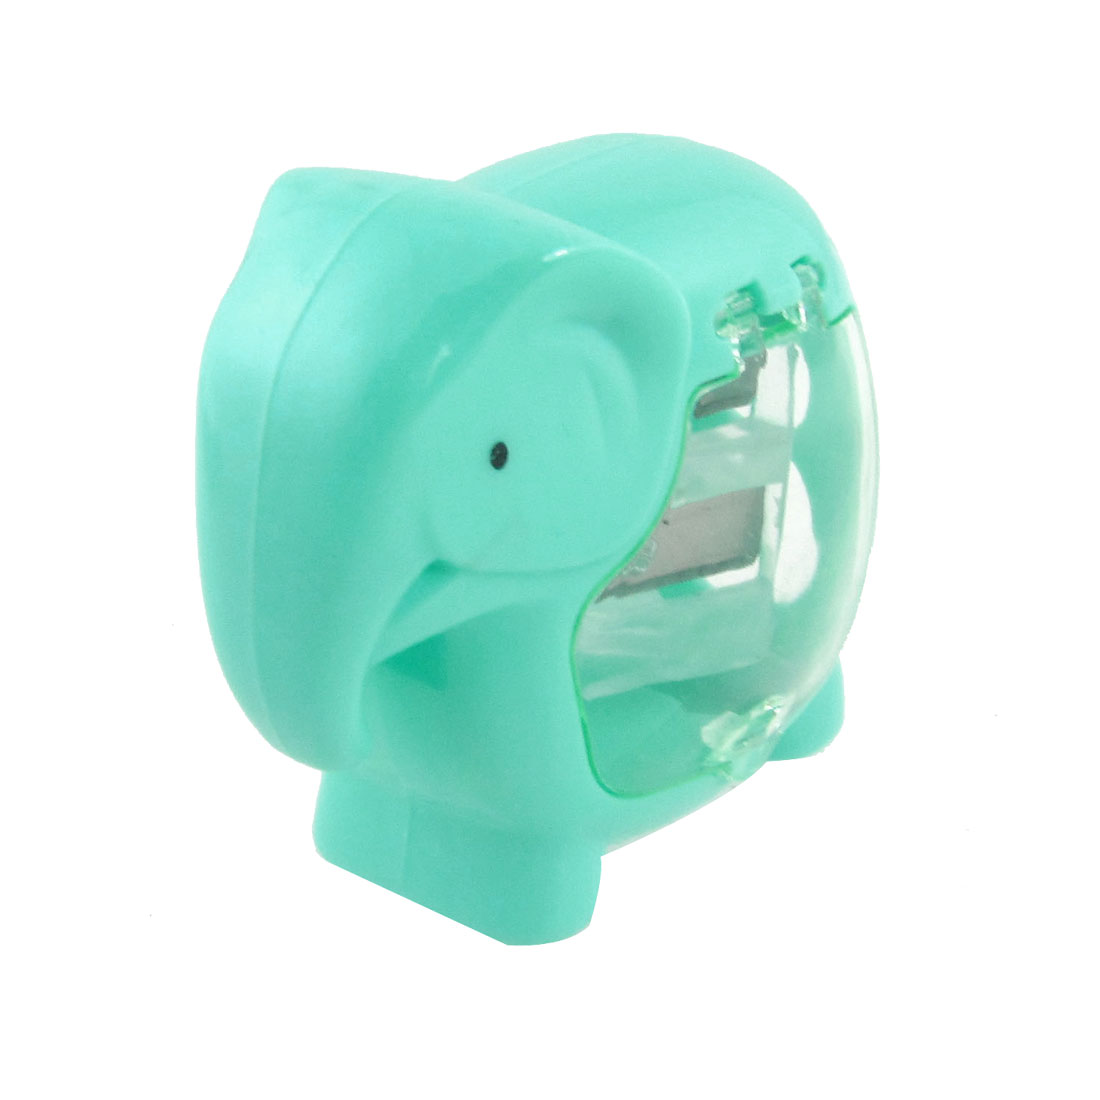 Dual Hole Plastic Green Elephant Shape Pencil Sharpener for Student